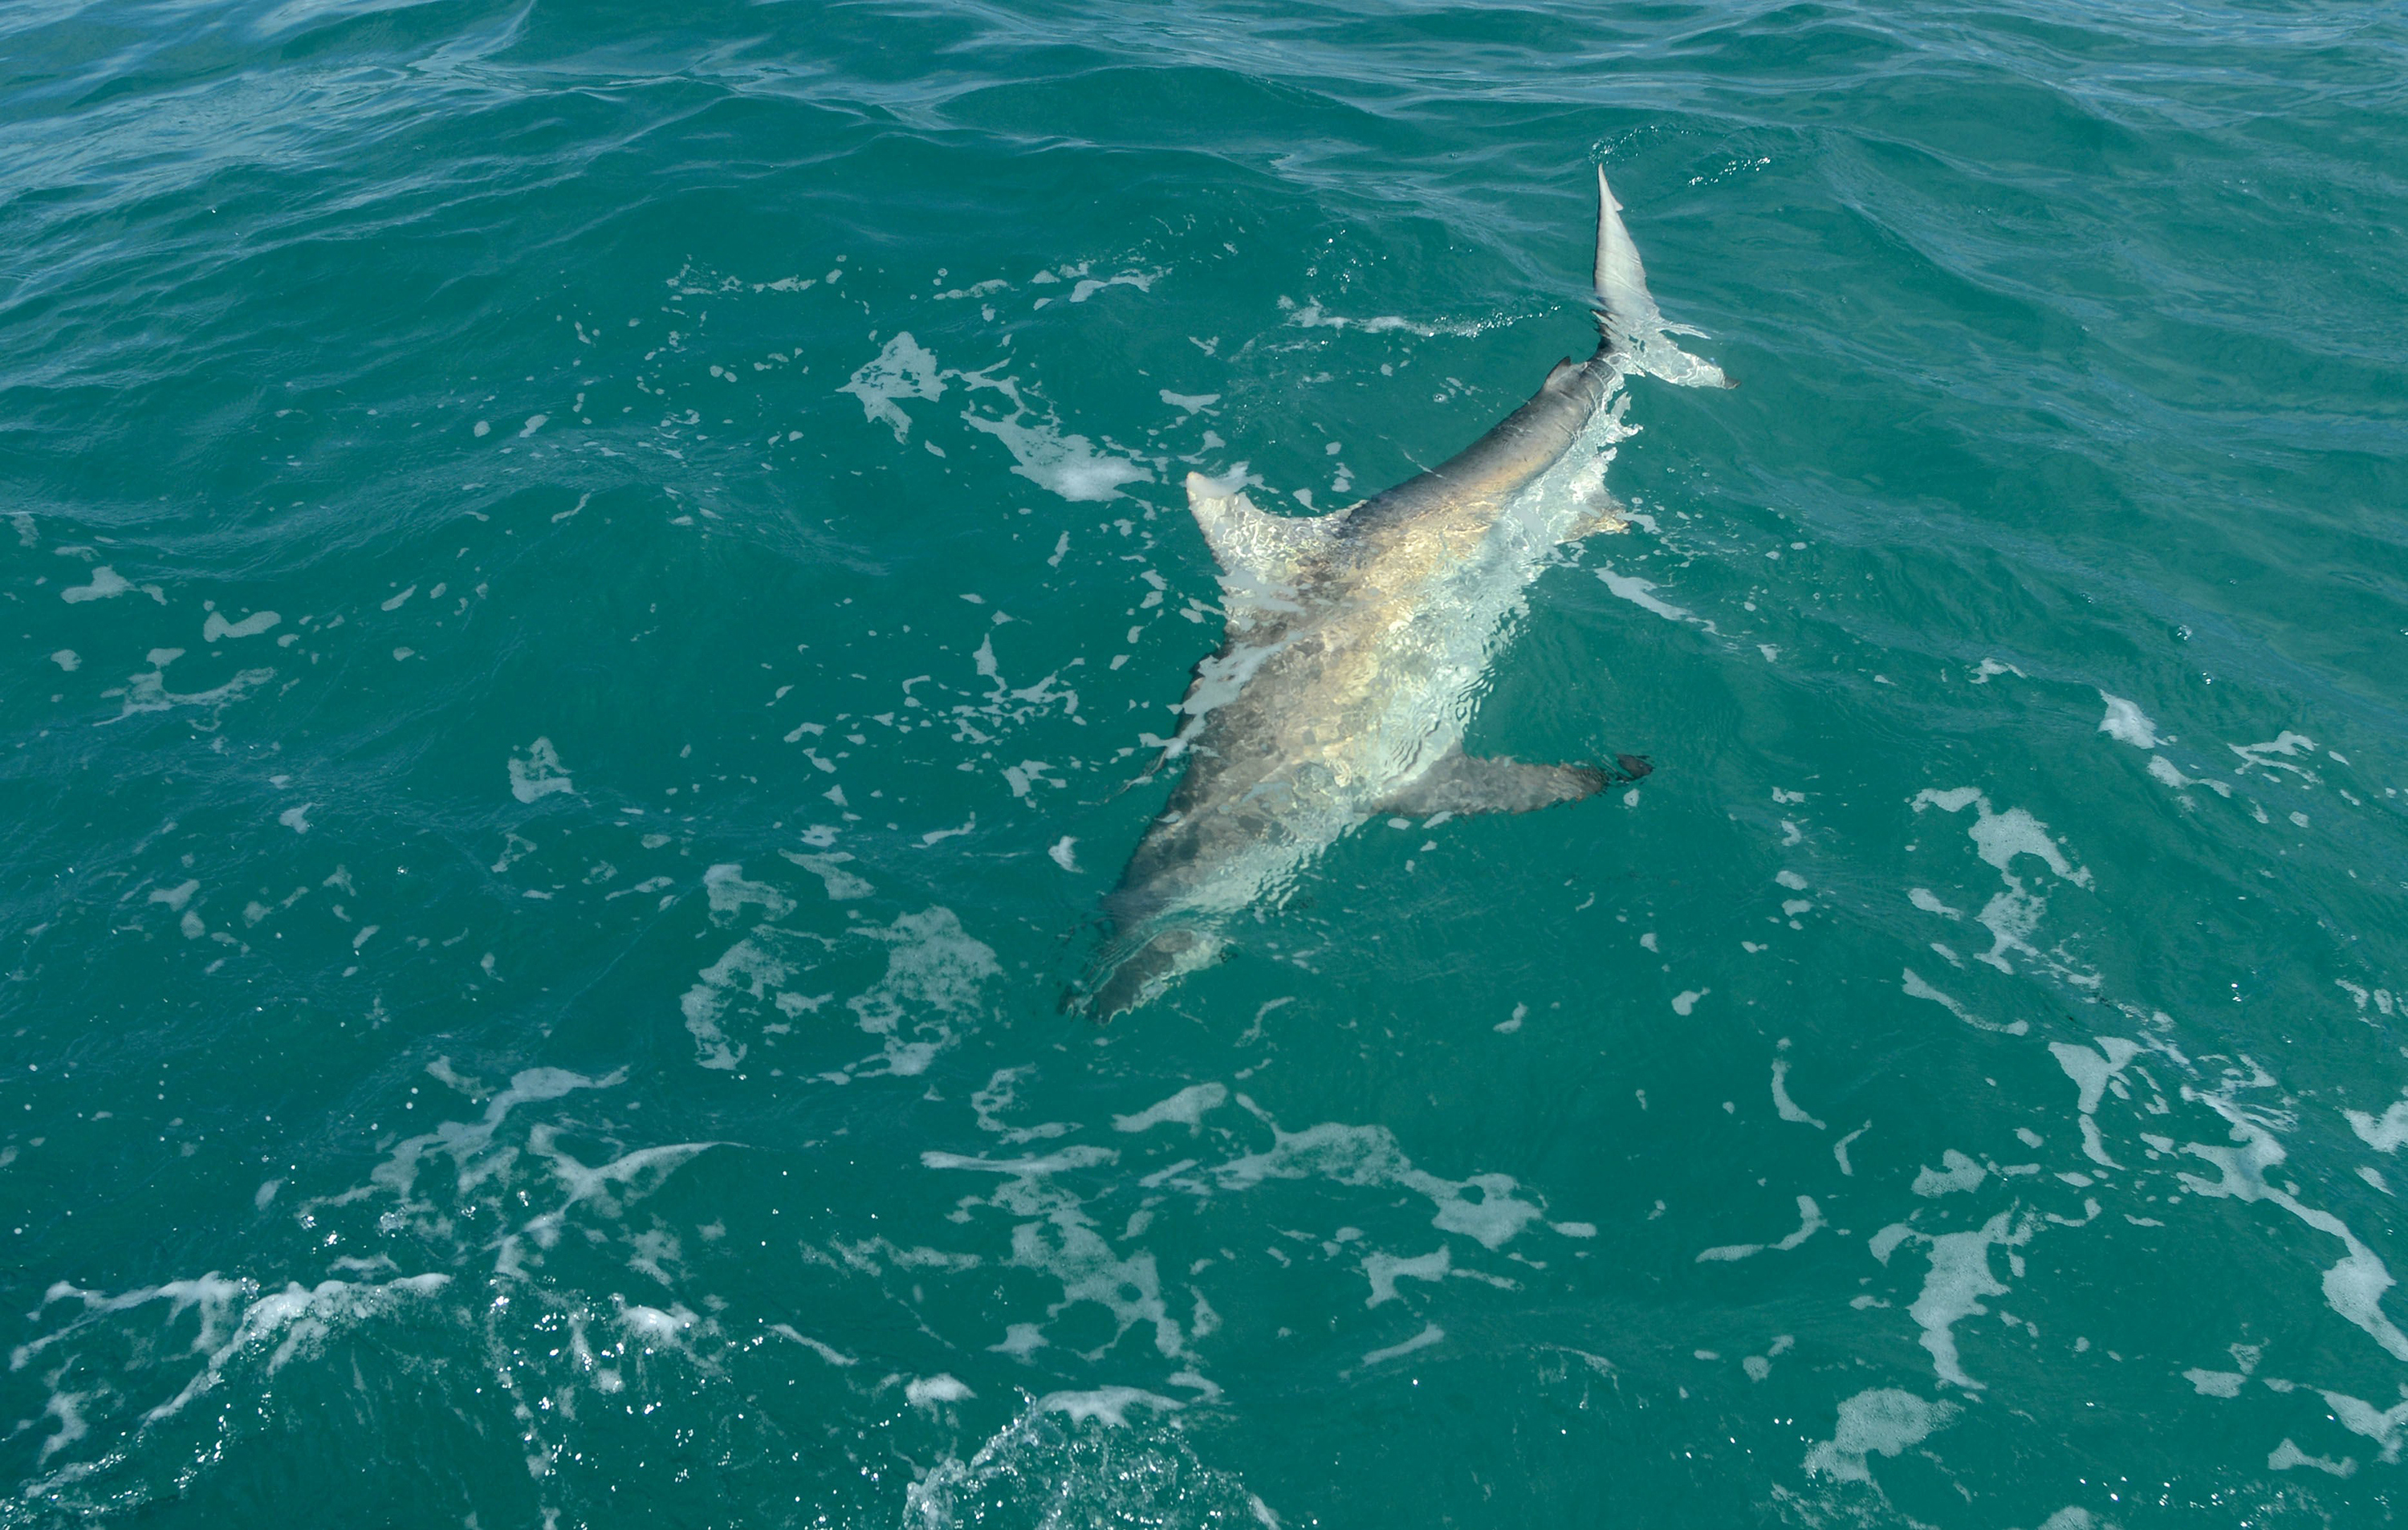 A blacktip shark hooked by Florida Atlantic University associate professor Stephen Kajiura and his team of students swims toward the boat off John D. MacArthur Beach State Park, March 3, 2015. According to Prof. Kajiura, around 10,000 blacktip sharks are swimming along the coast of Palm Beach, Florida.